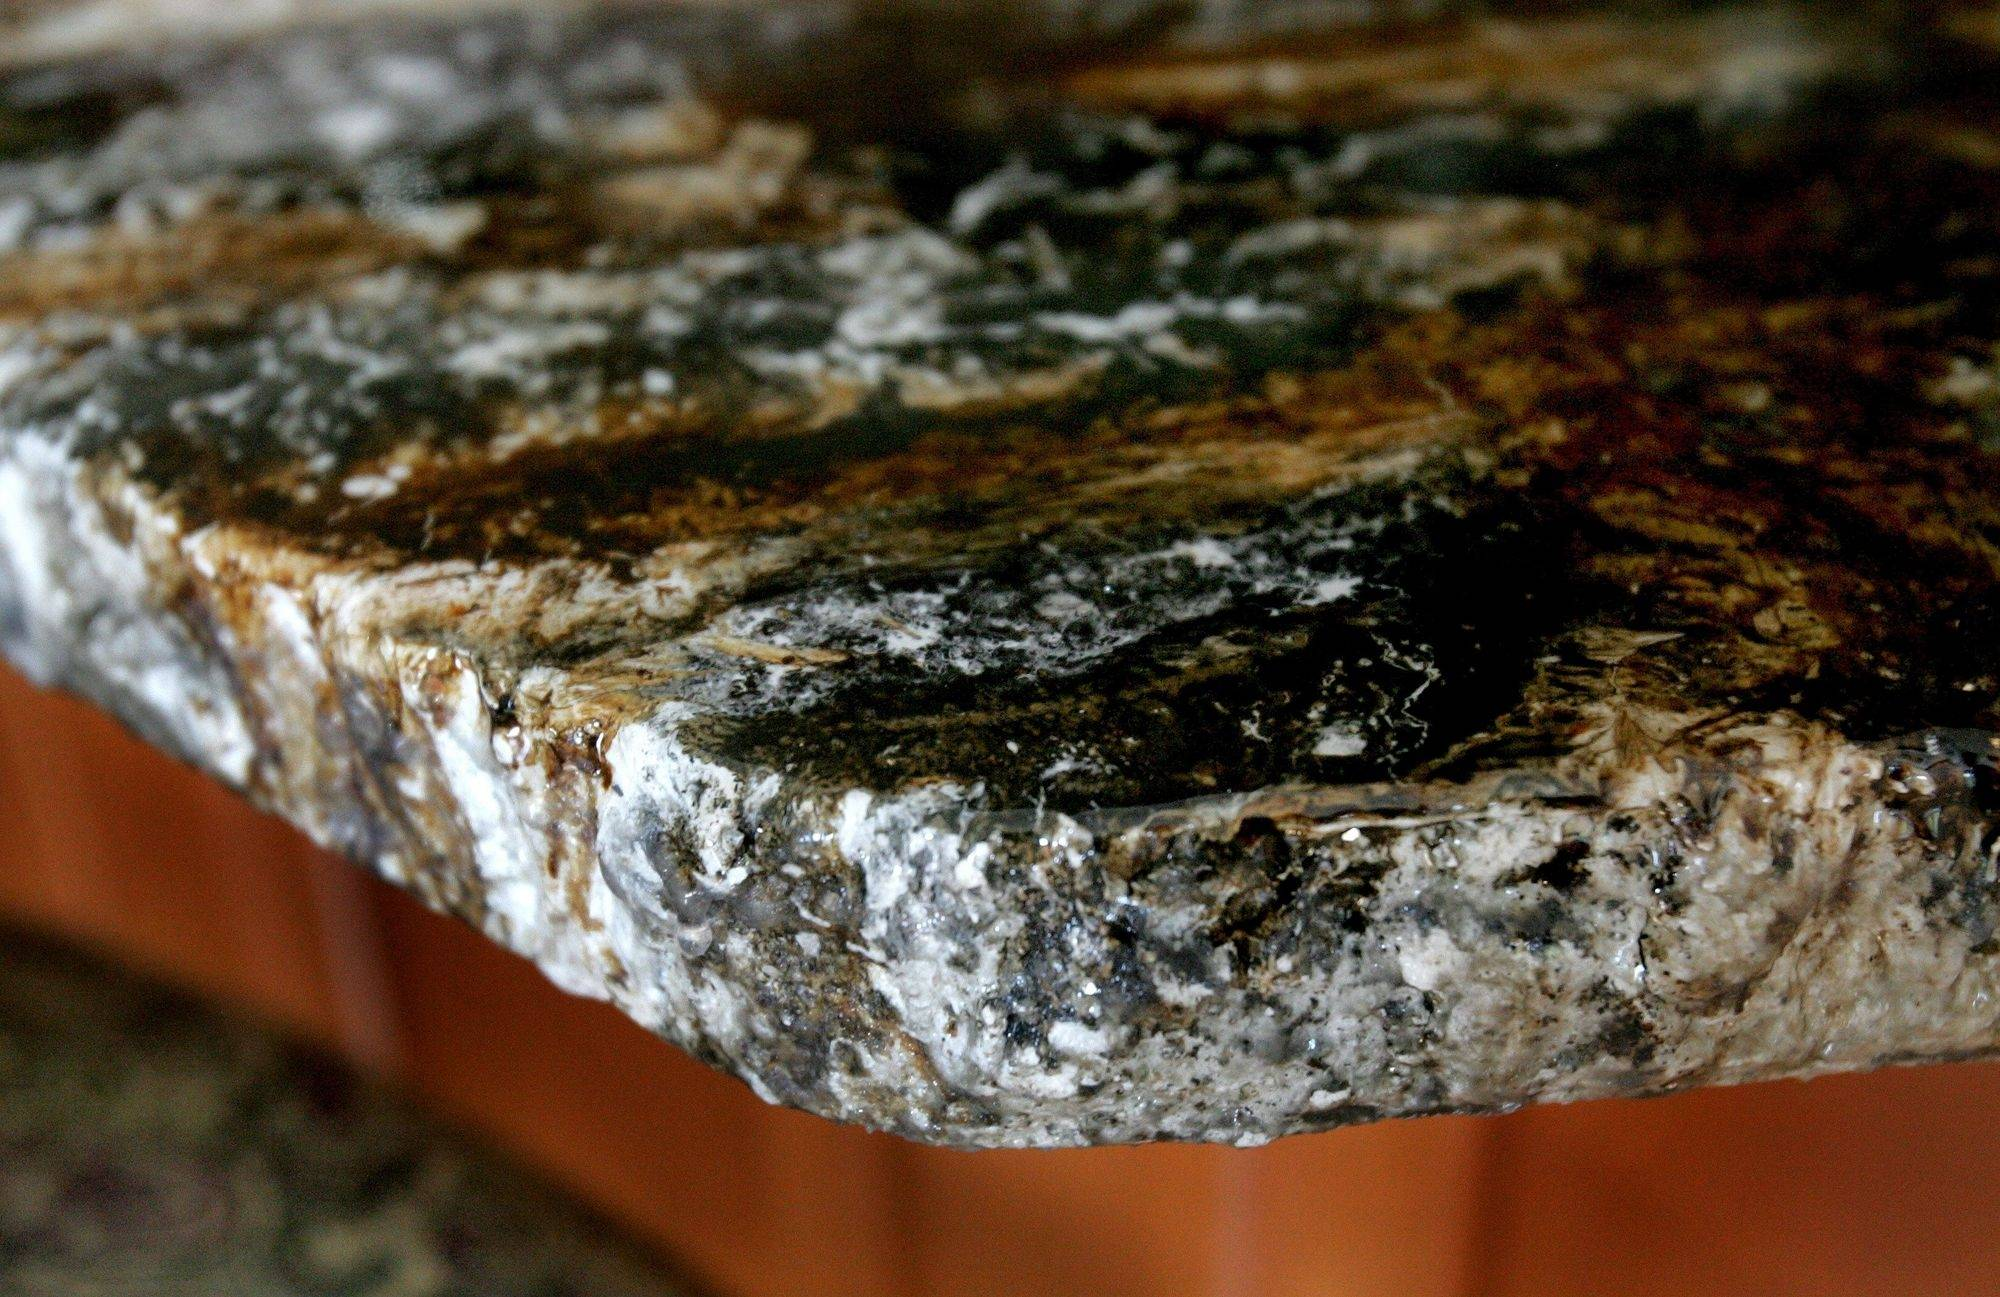 faux granite kitchen countertops with 306269998 on Lg Hausys Quartz Bathroom Rustic With 3cm Viatera Rococo Metal Towel Rings as well Boat Interior Design further Watch furthermore Watch moreover Exciting Design Ideas For Faux Wood Beams.